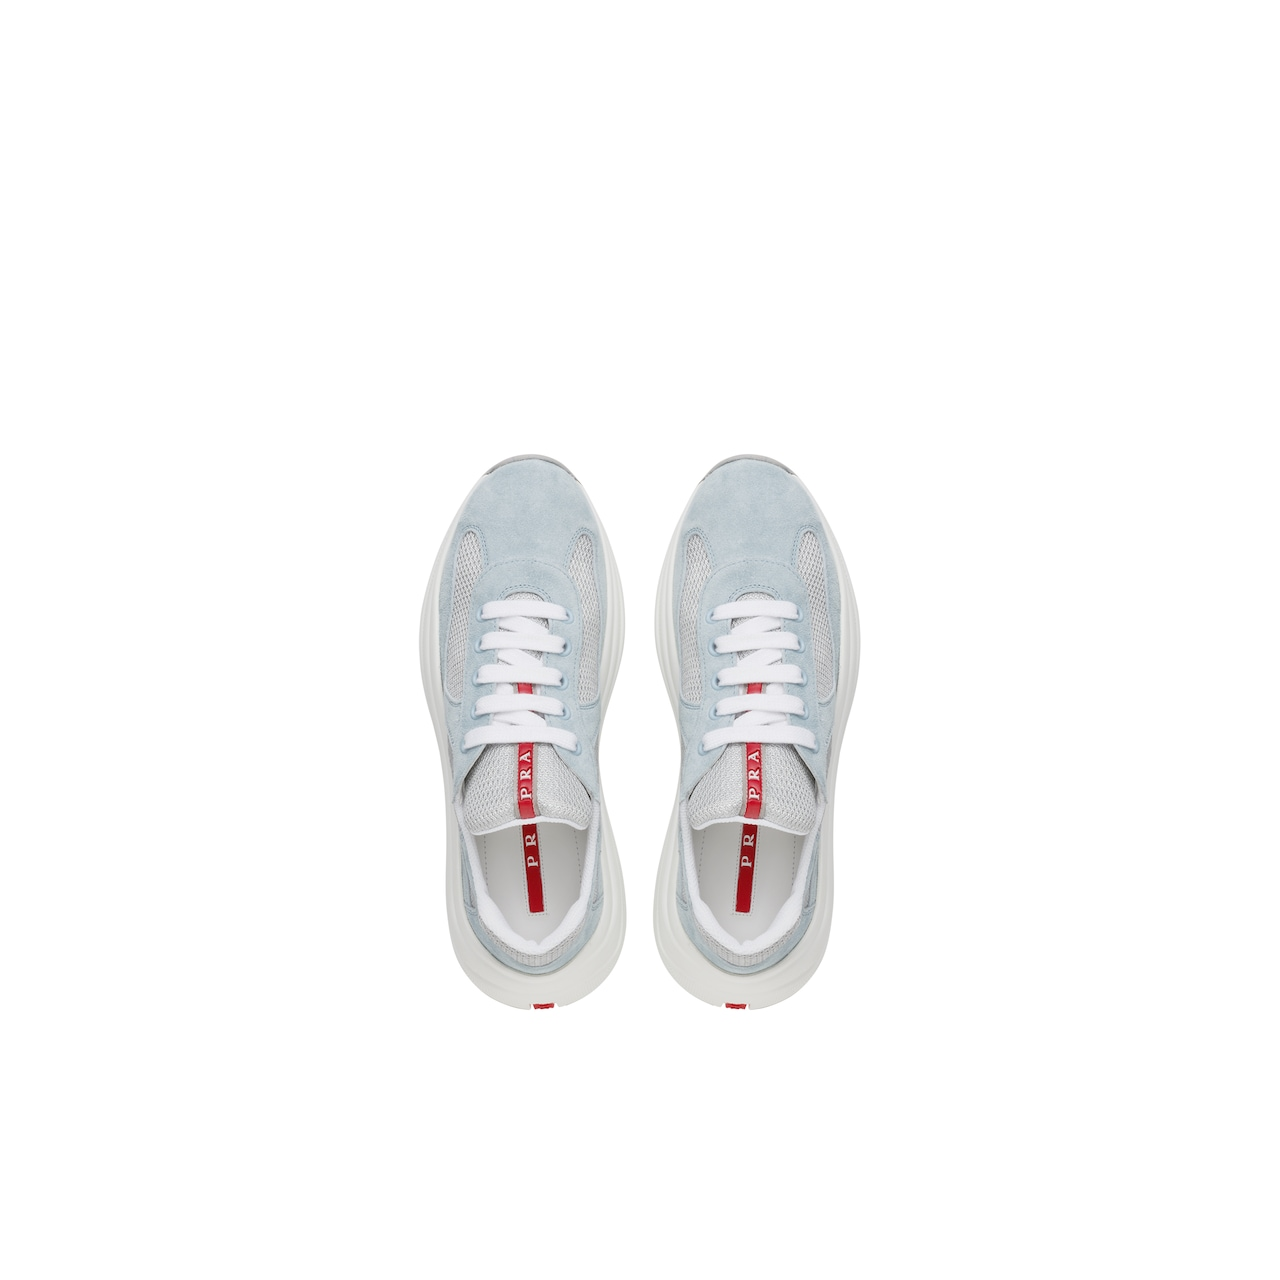 Prada America's cup suede and fabric sneakers 4